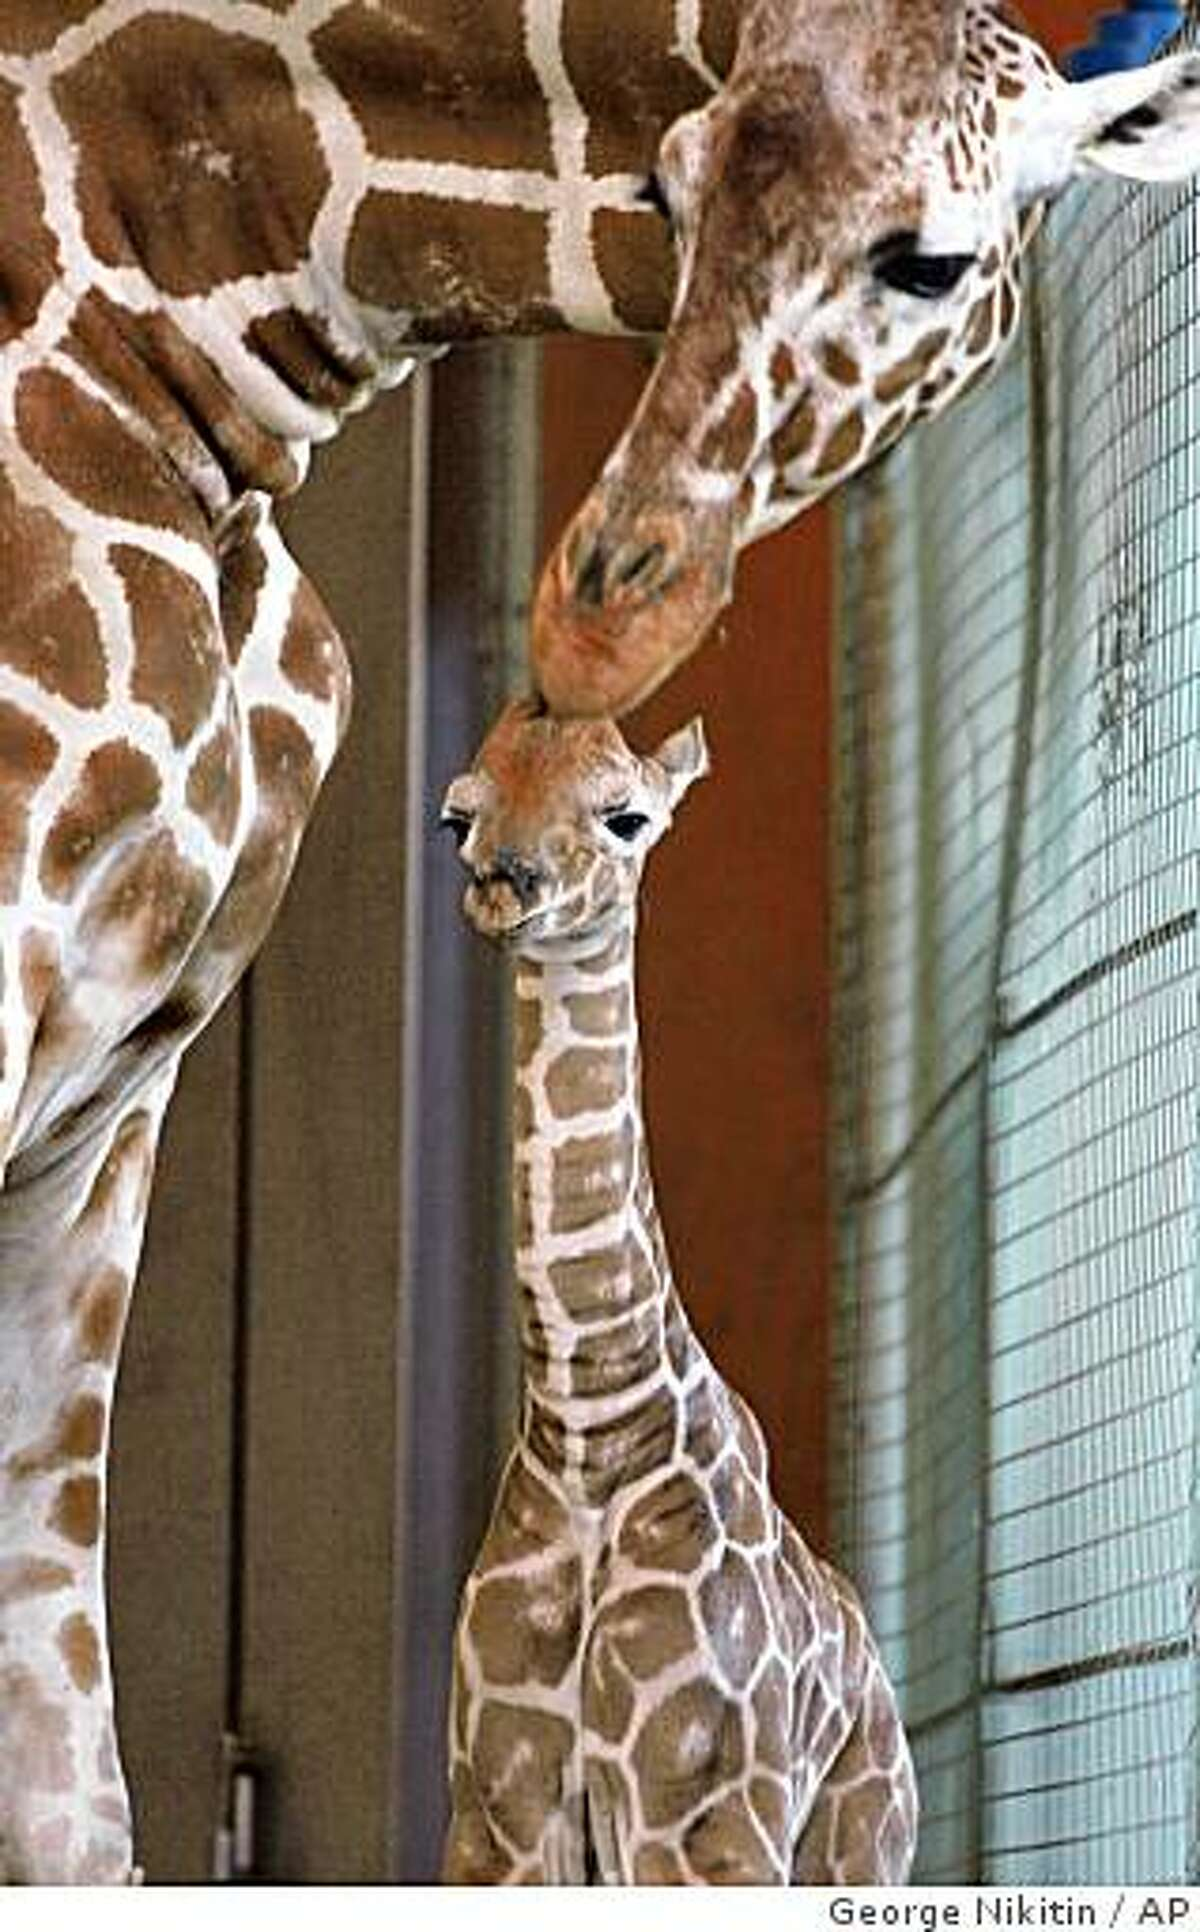 In this photo provided by the San Francisco Zoo, a baby reticulated giraffe calf is nuzzled by its mother, Kristin, at the San Francisco Zoo, Thursday, April 2, 2009 in San Francisco, Calif. This is Kristin's third calf and marks the sixth calf sired by Floyd at the San Francisco Zoo. The calf was born this morning at sun-up. Giraffe females give birth standing up after the 14 to 15 month gestation period, a six foot drop for the Calf's entrance into the world.